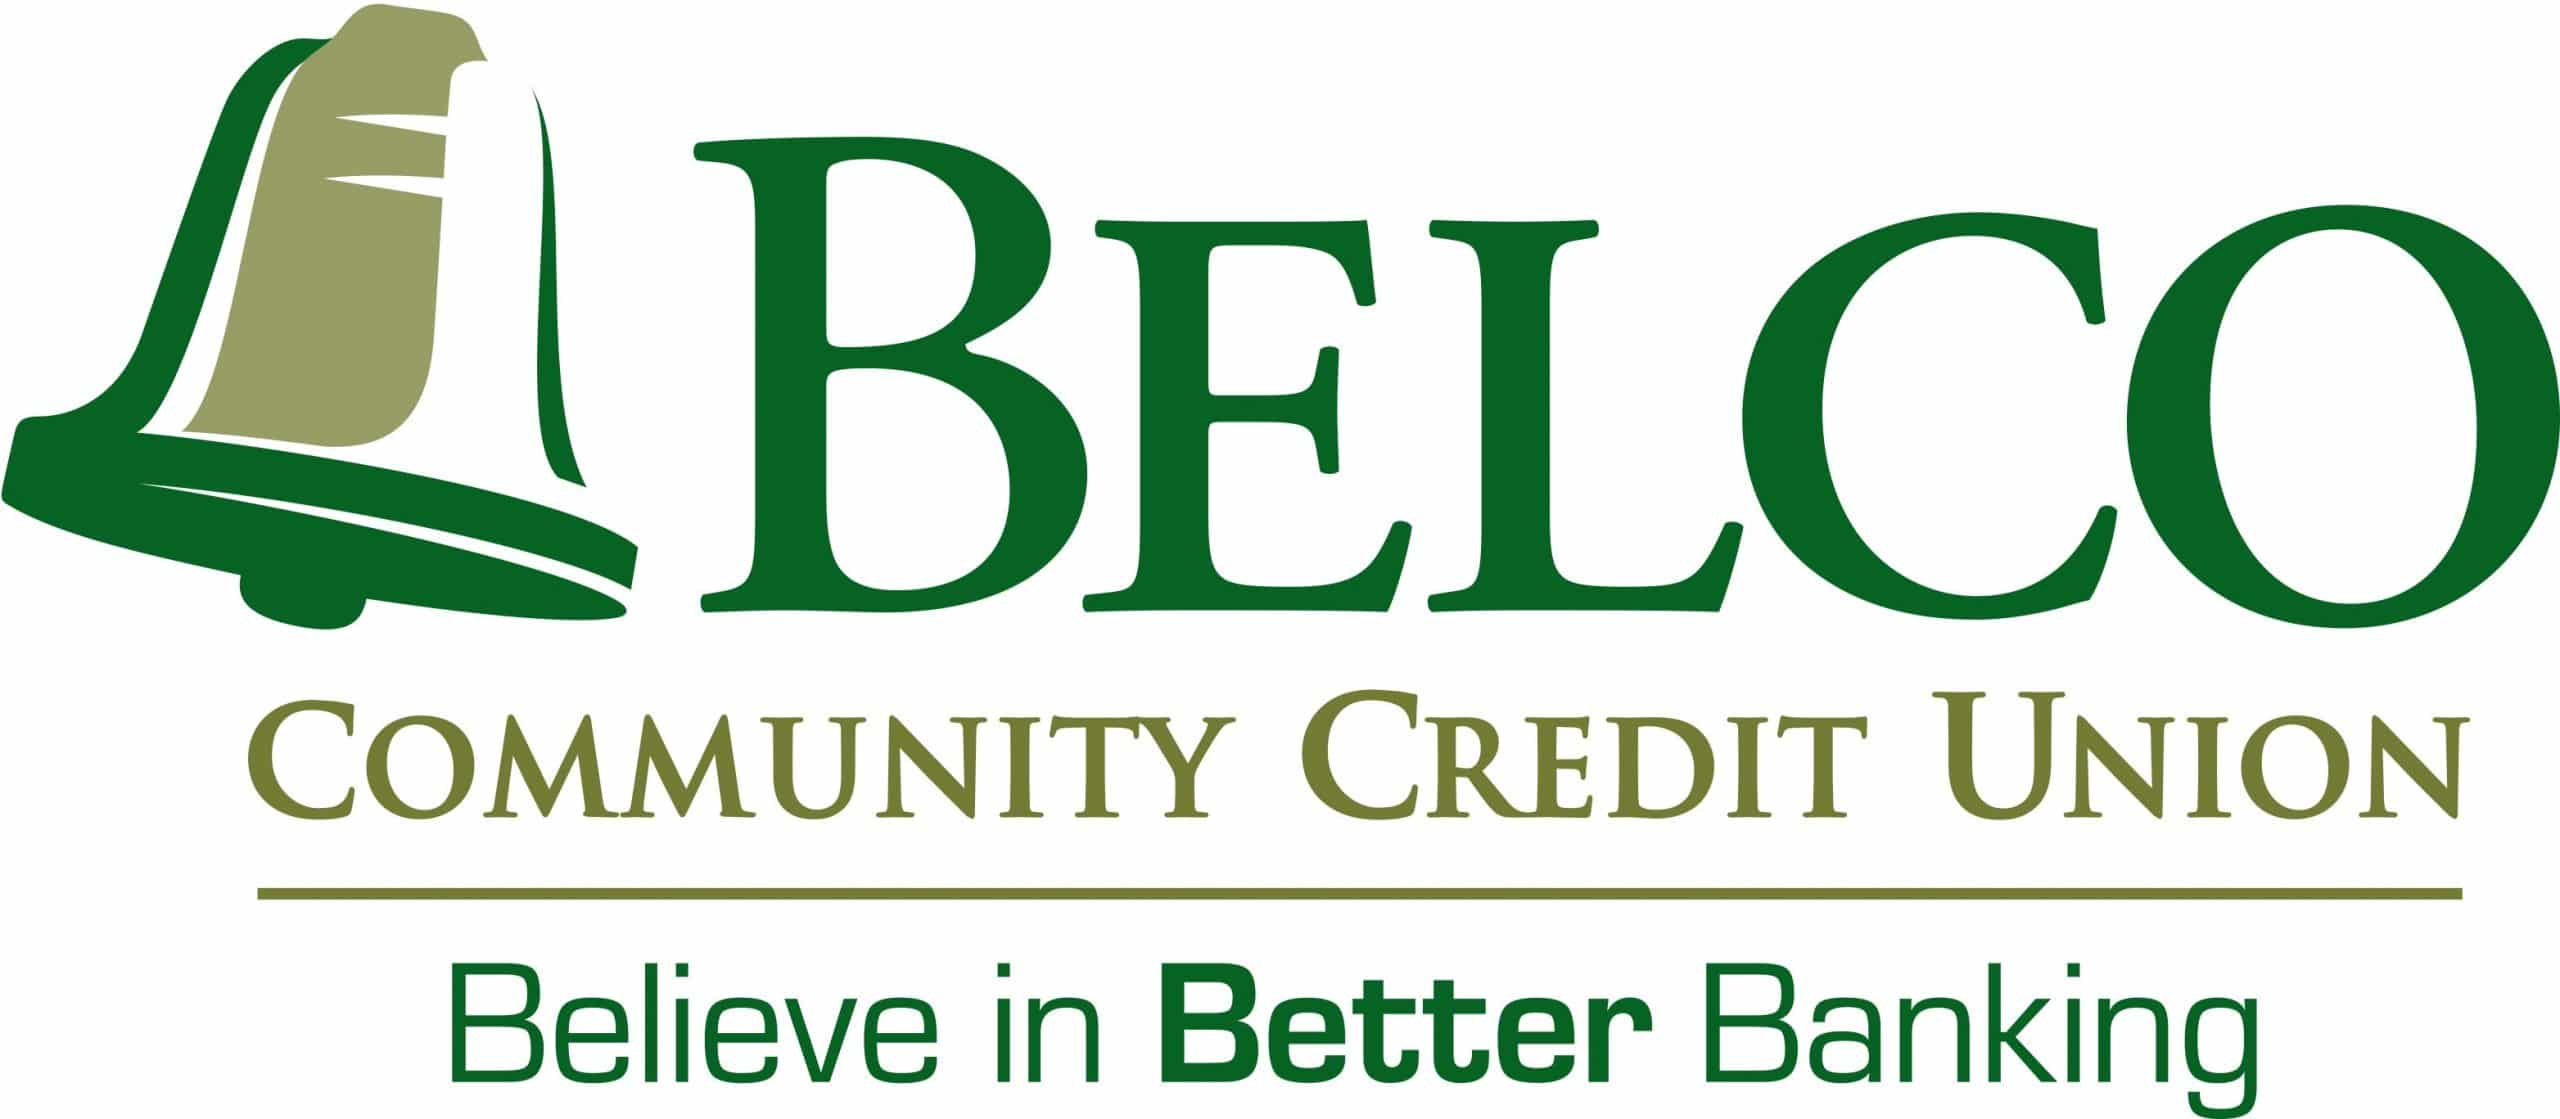 Supporting Sponsor - Belco Community Credit Union